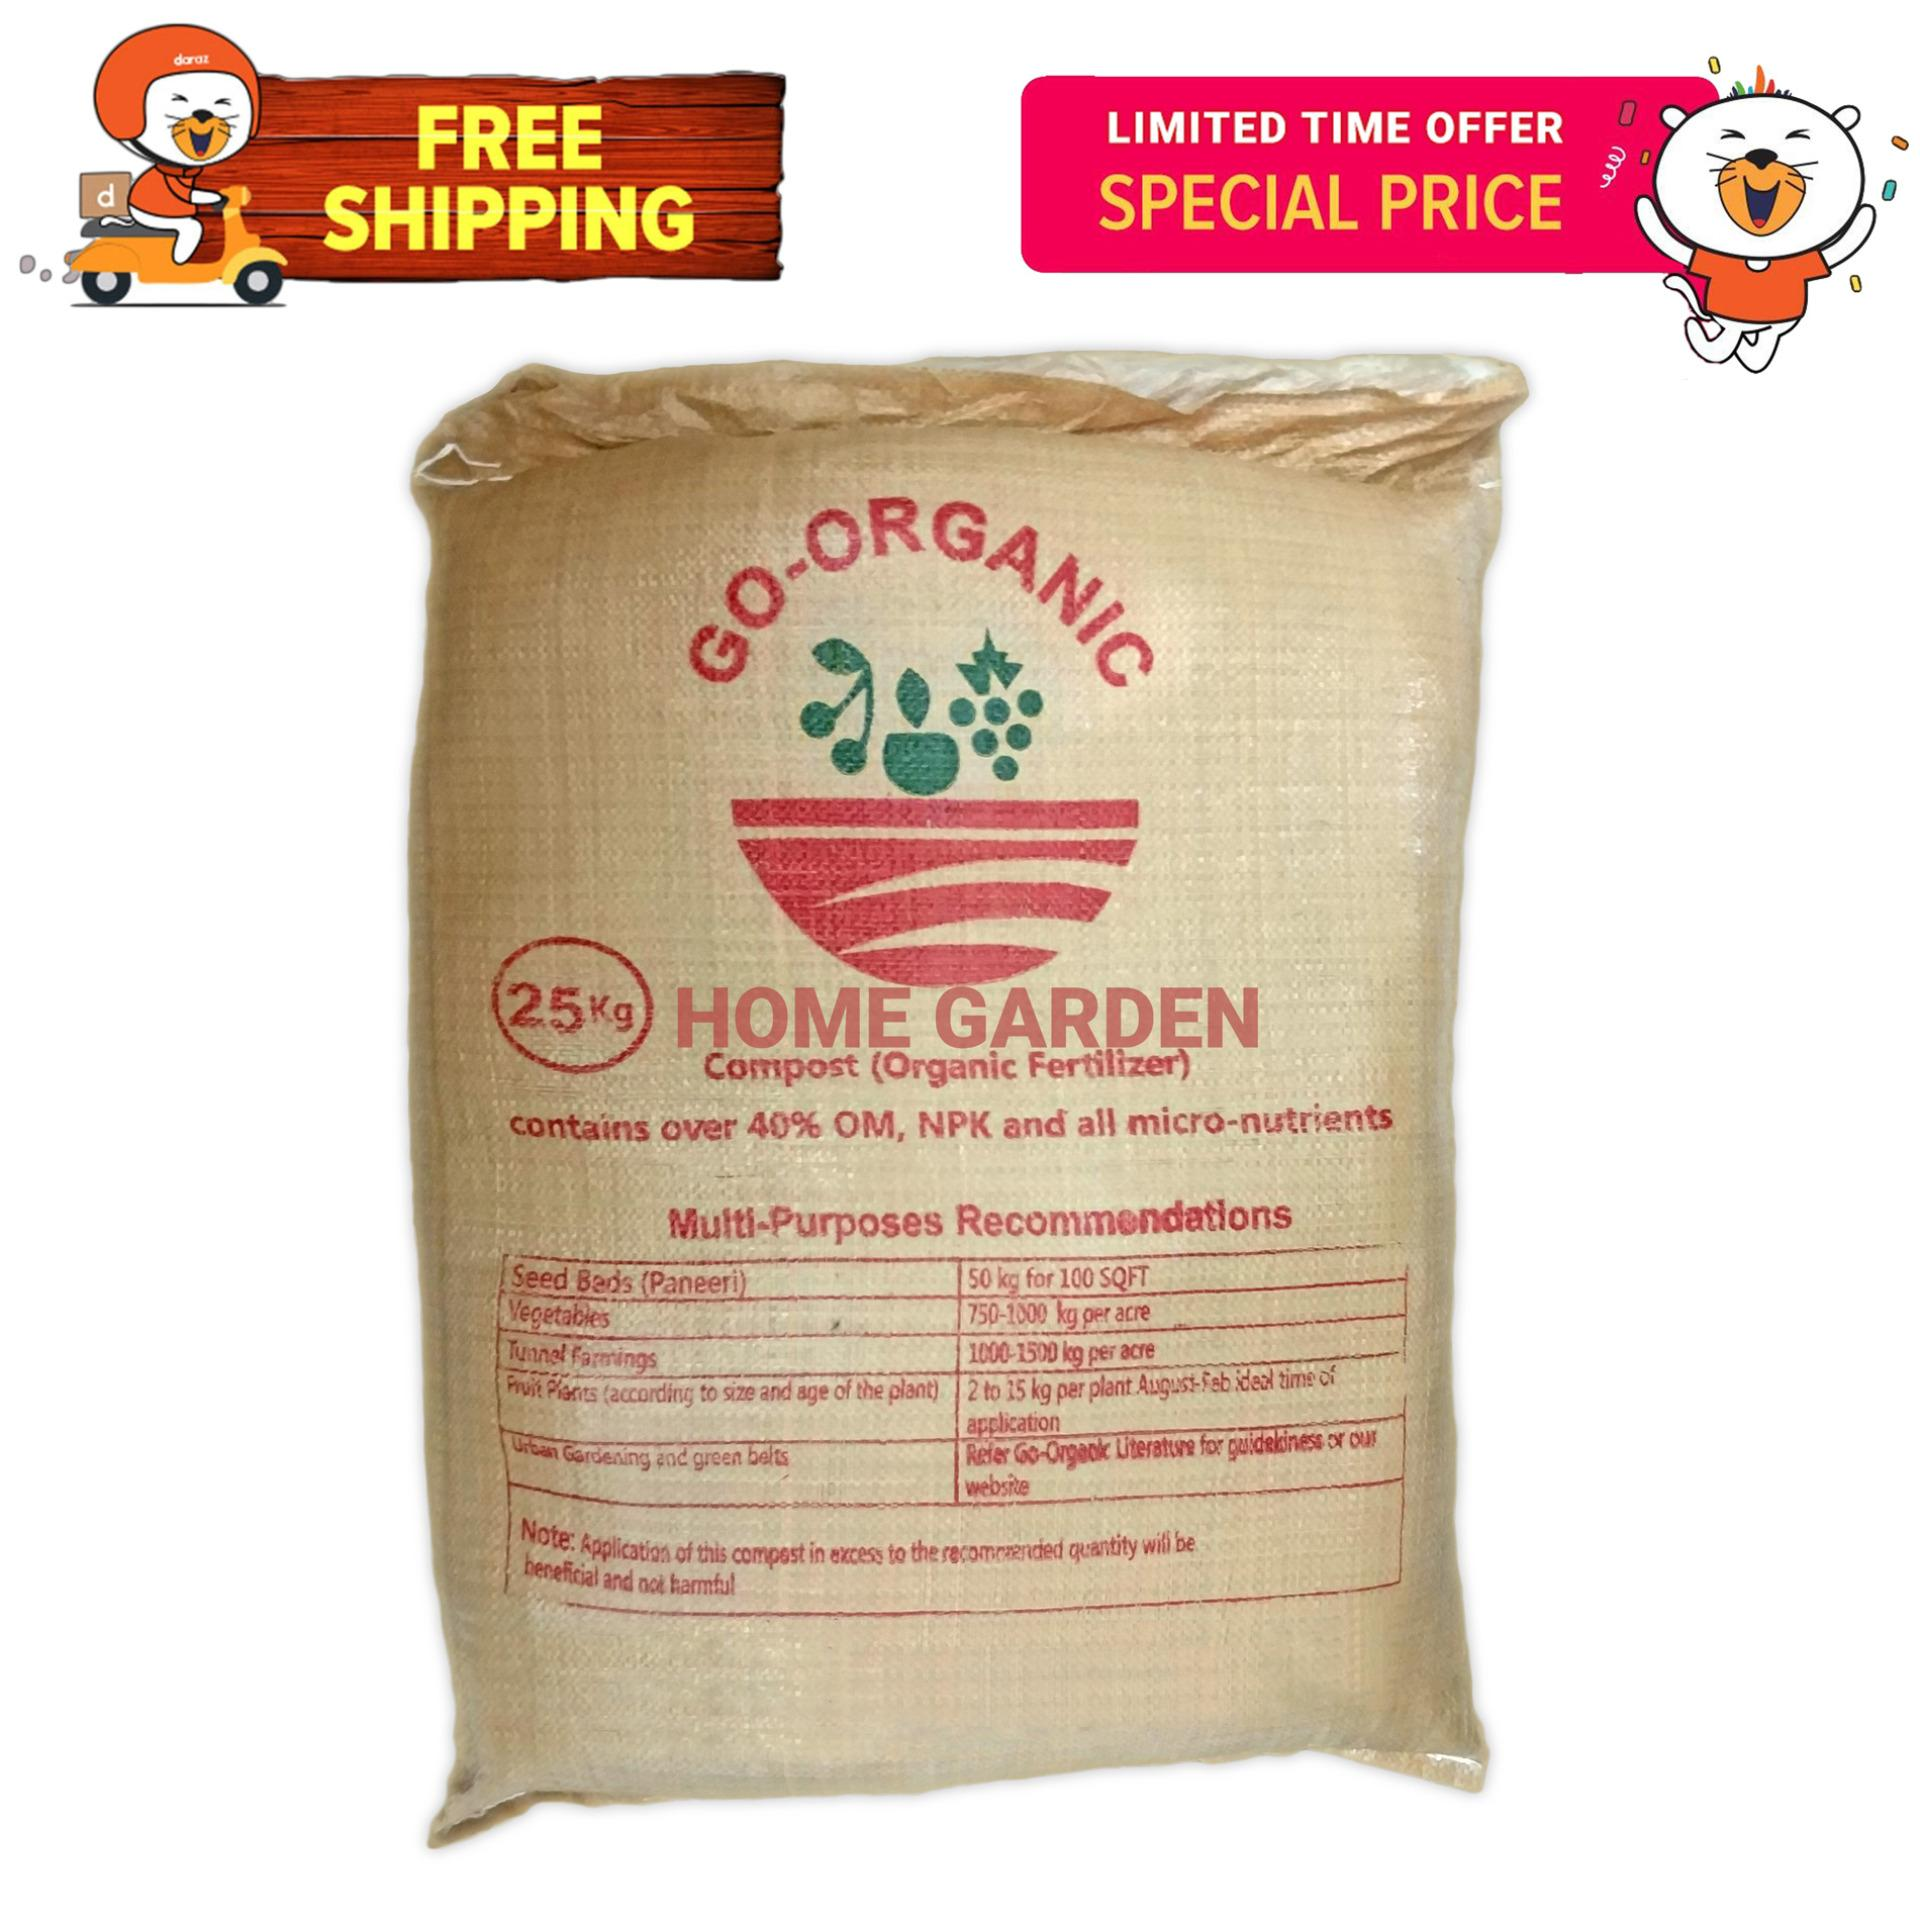 Go-Organic 25Kg Organic Compost and Multipurpose Fertilizer for Plants,  Lawn and Garden - FREE SHIPPING